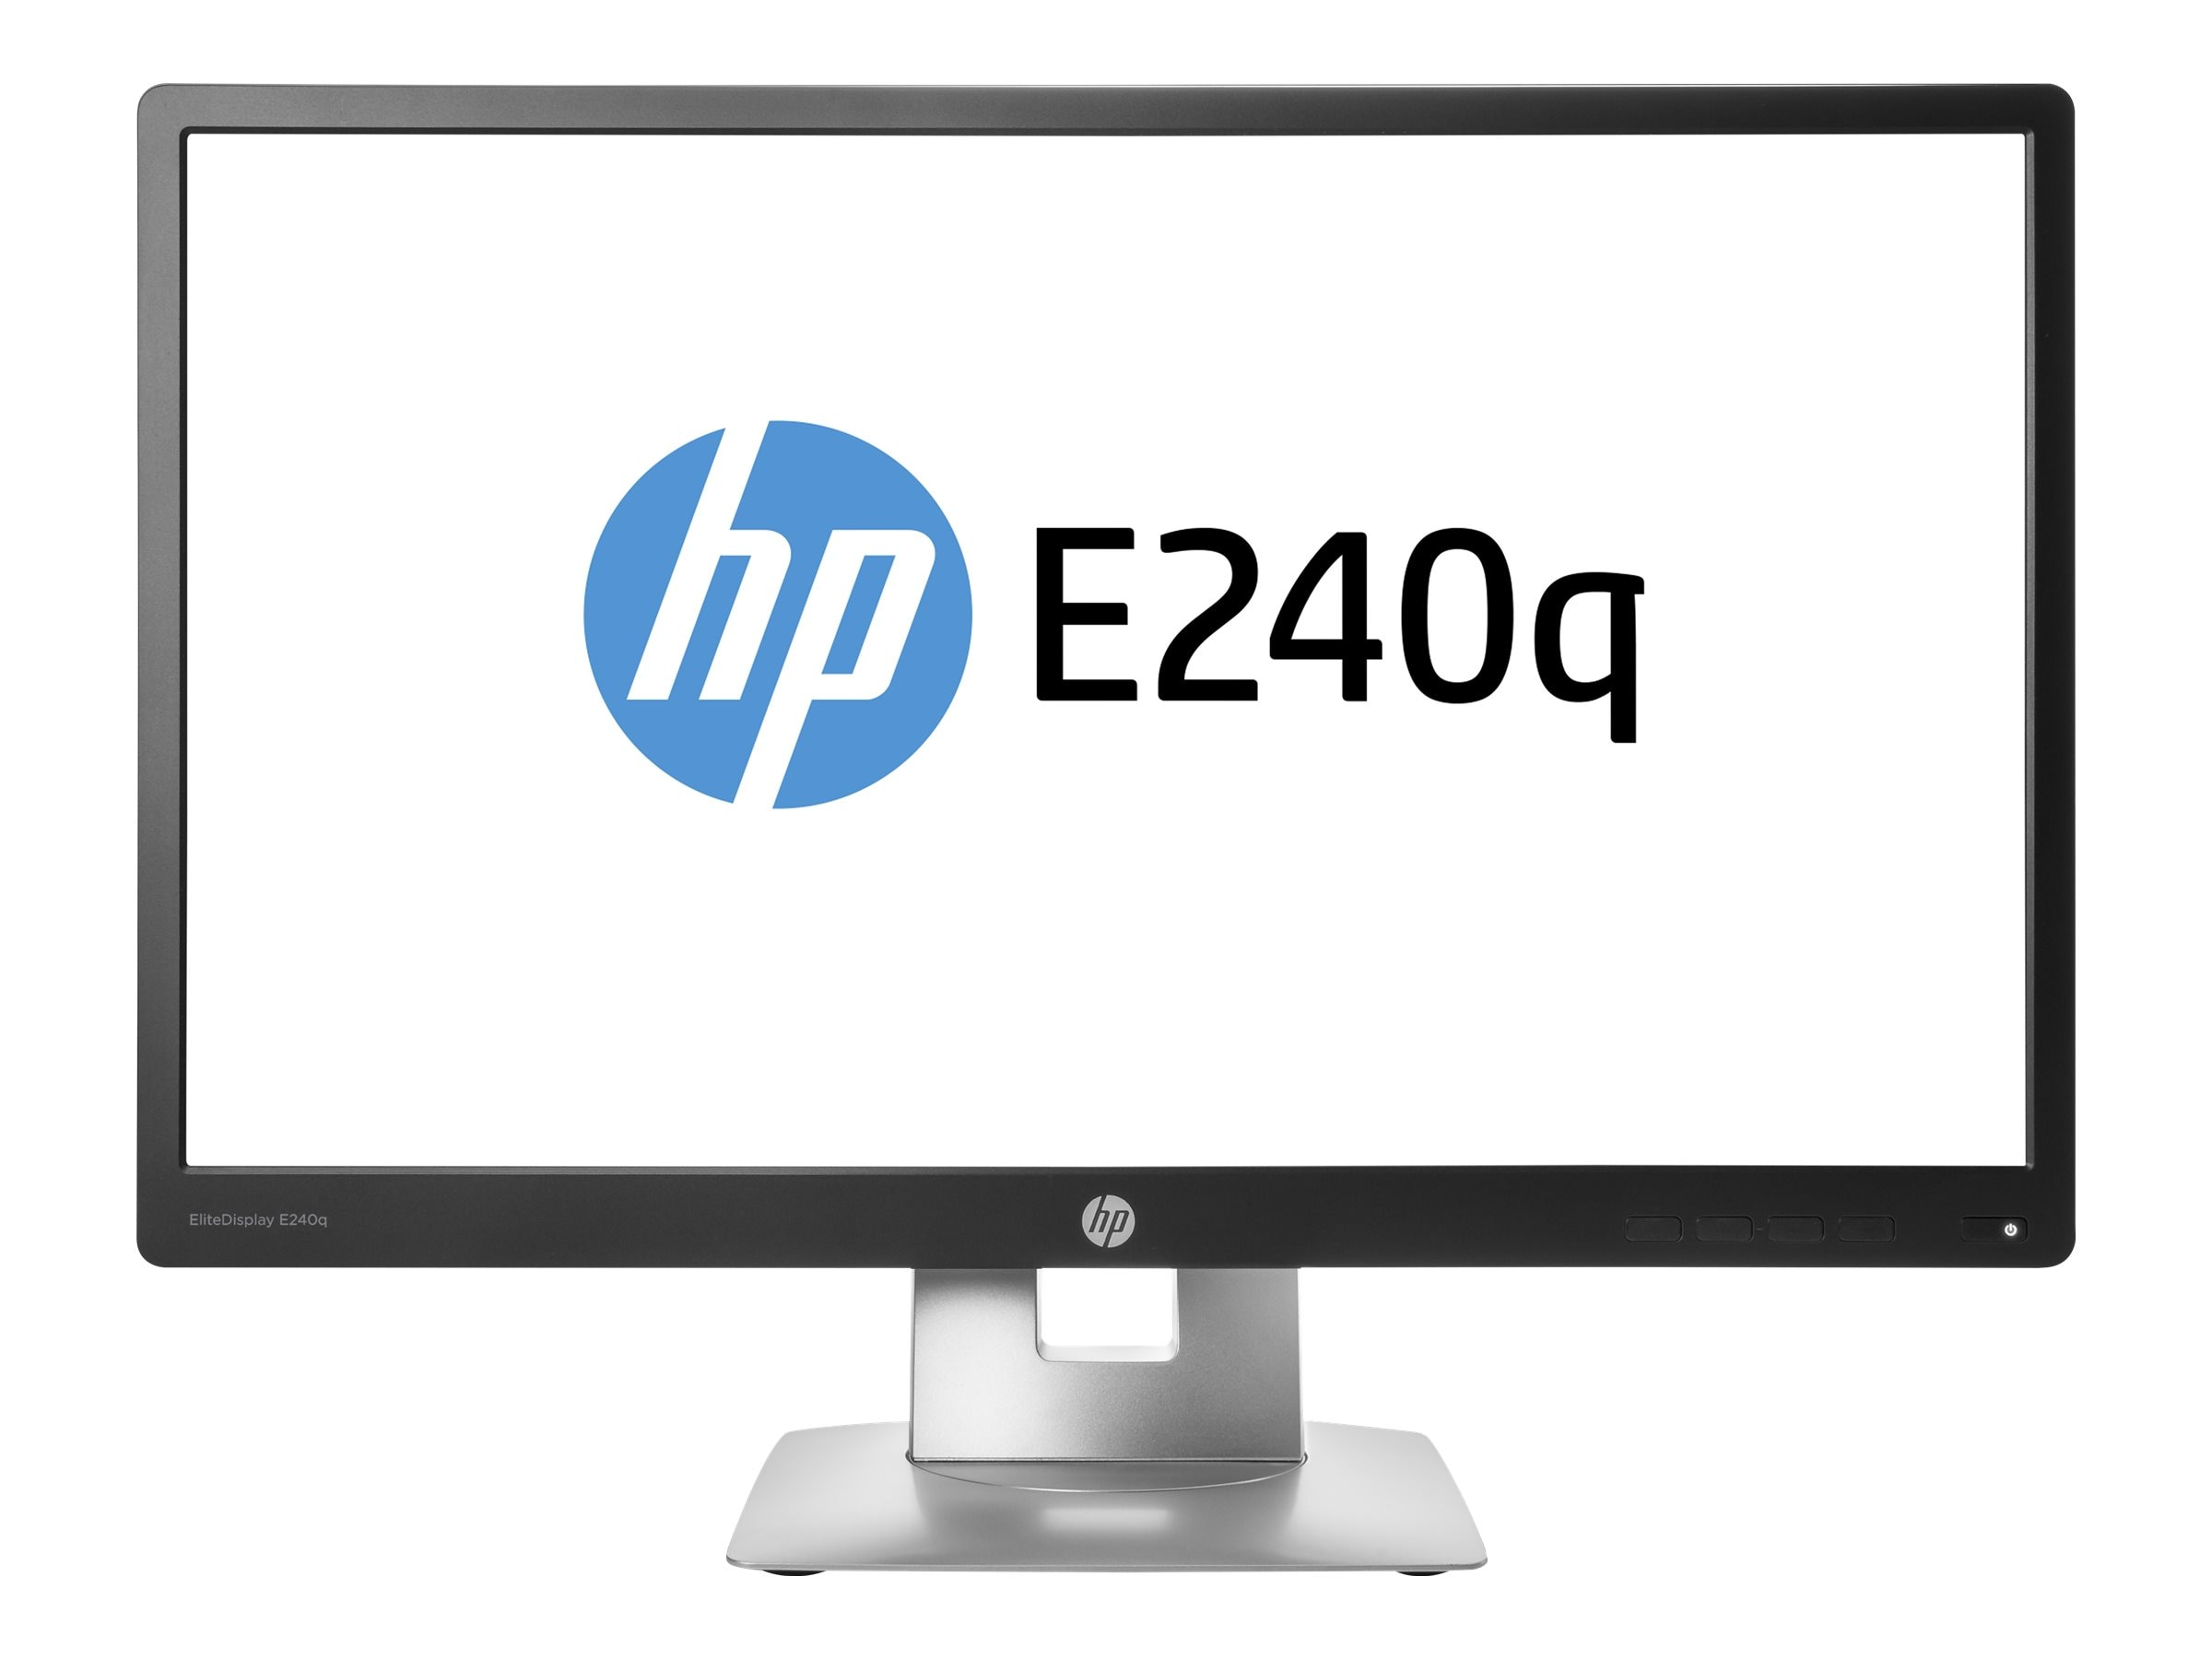 HP 23.8 E240Q QHD LED-LCD Monitor, Black, M1P01AA#ABA